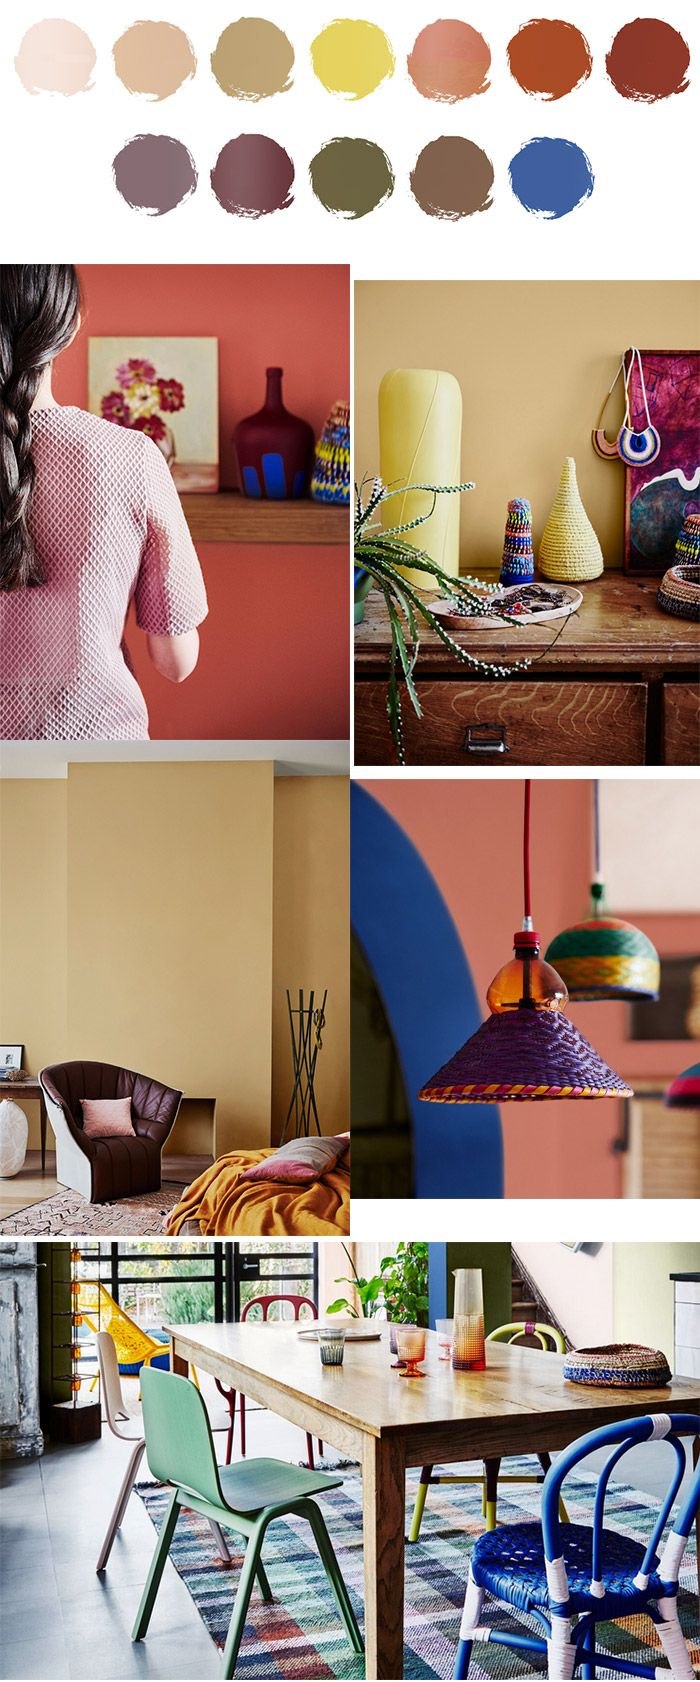 57 best 2017 Interior Style images on Pinterest   Color trends ...